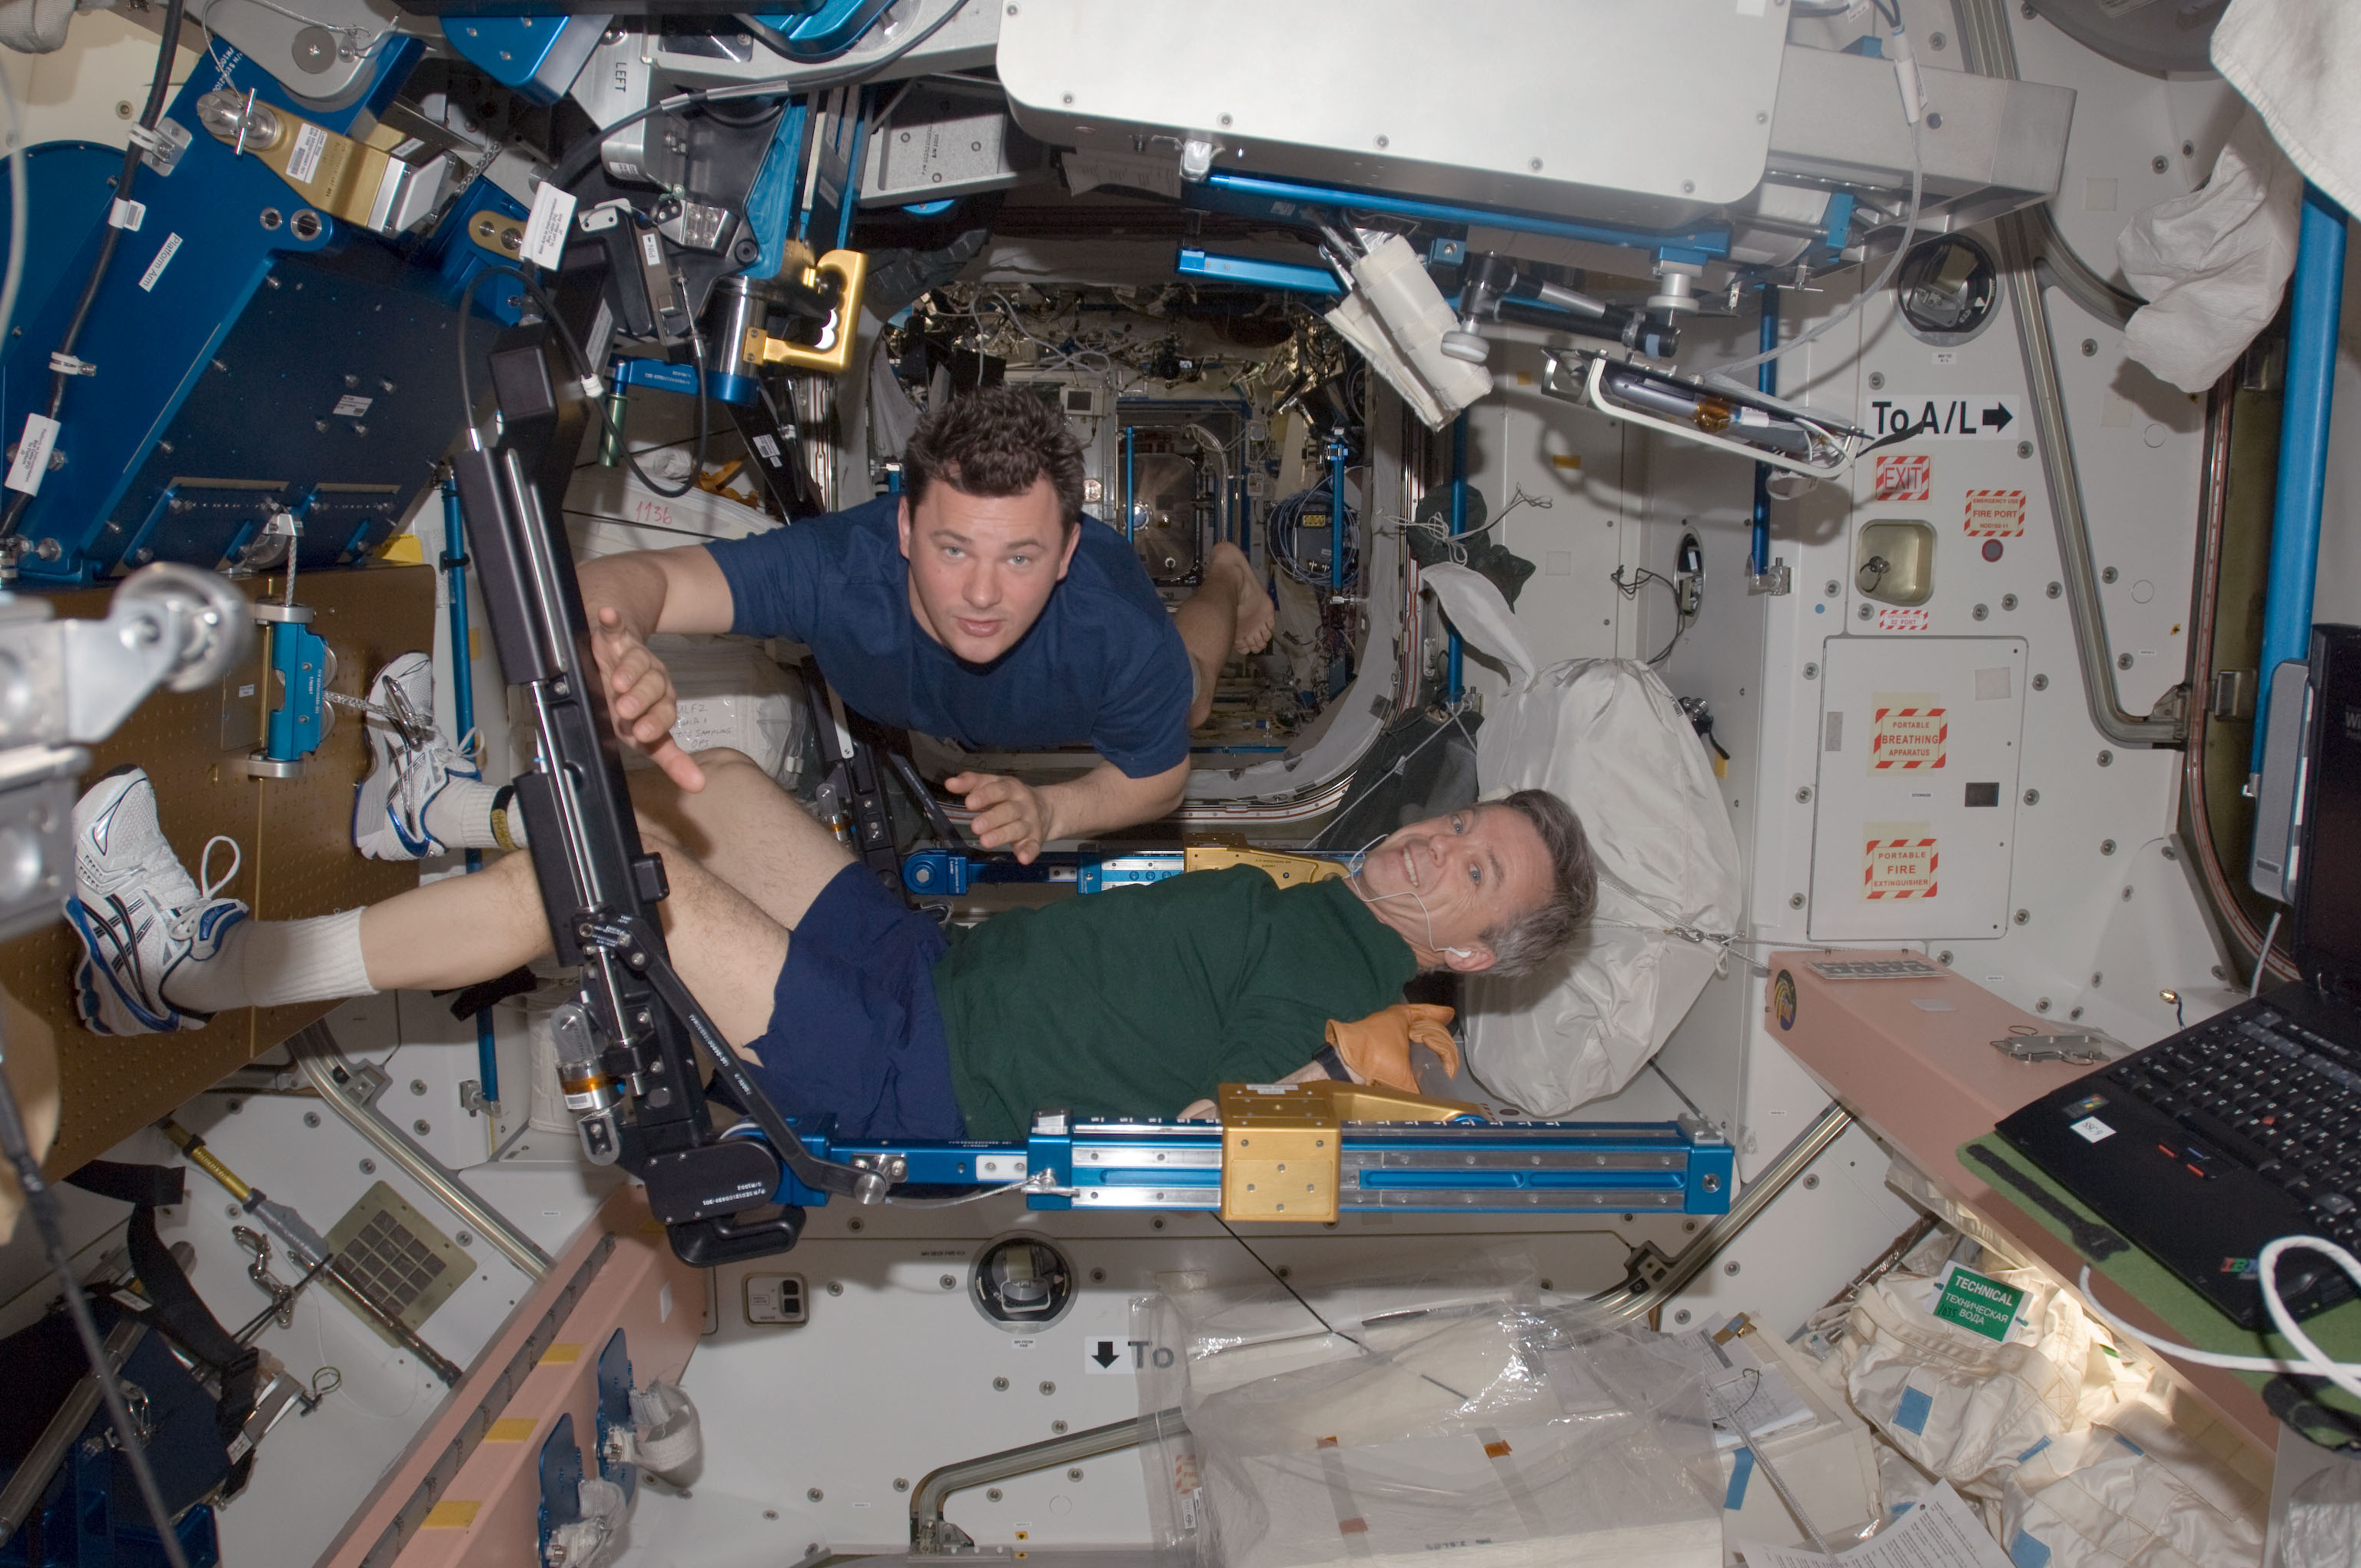 Astronauts make, fling, float, eat pizzas on space station